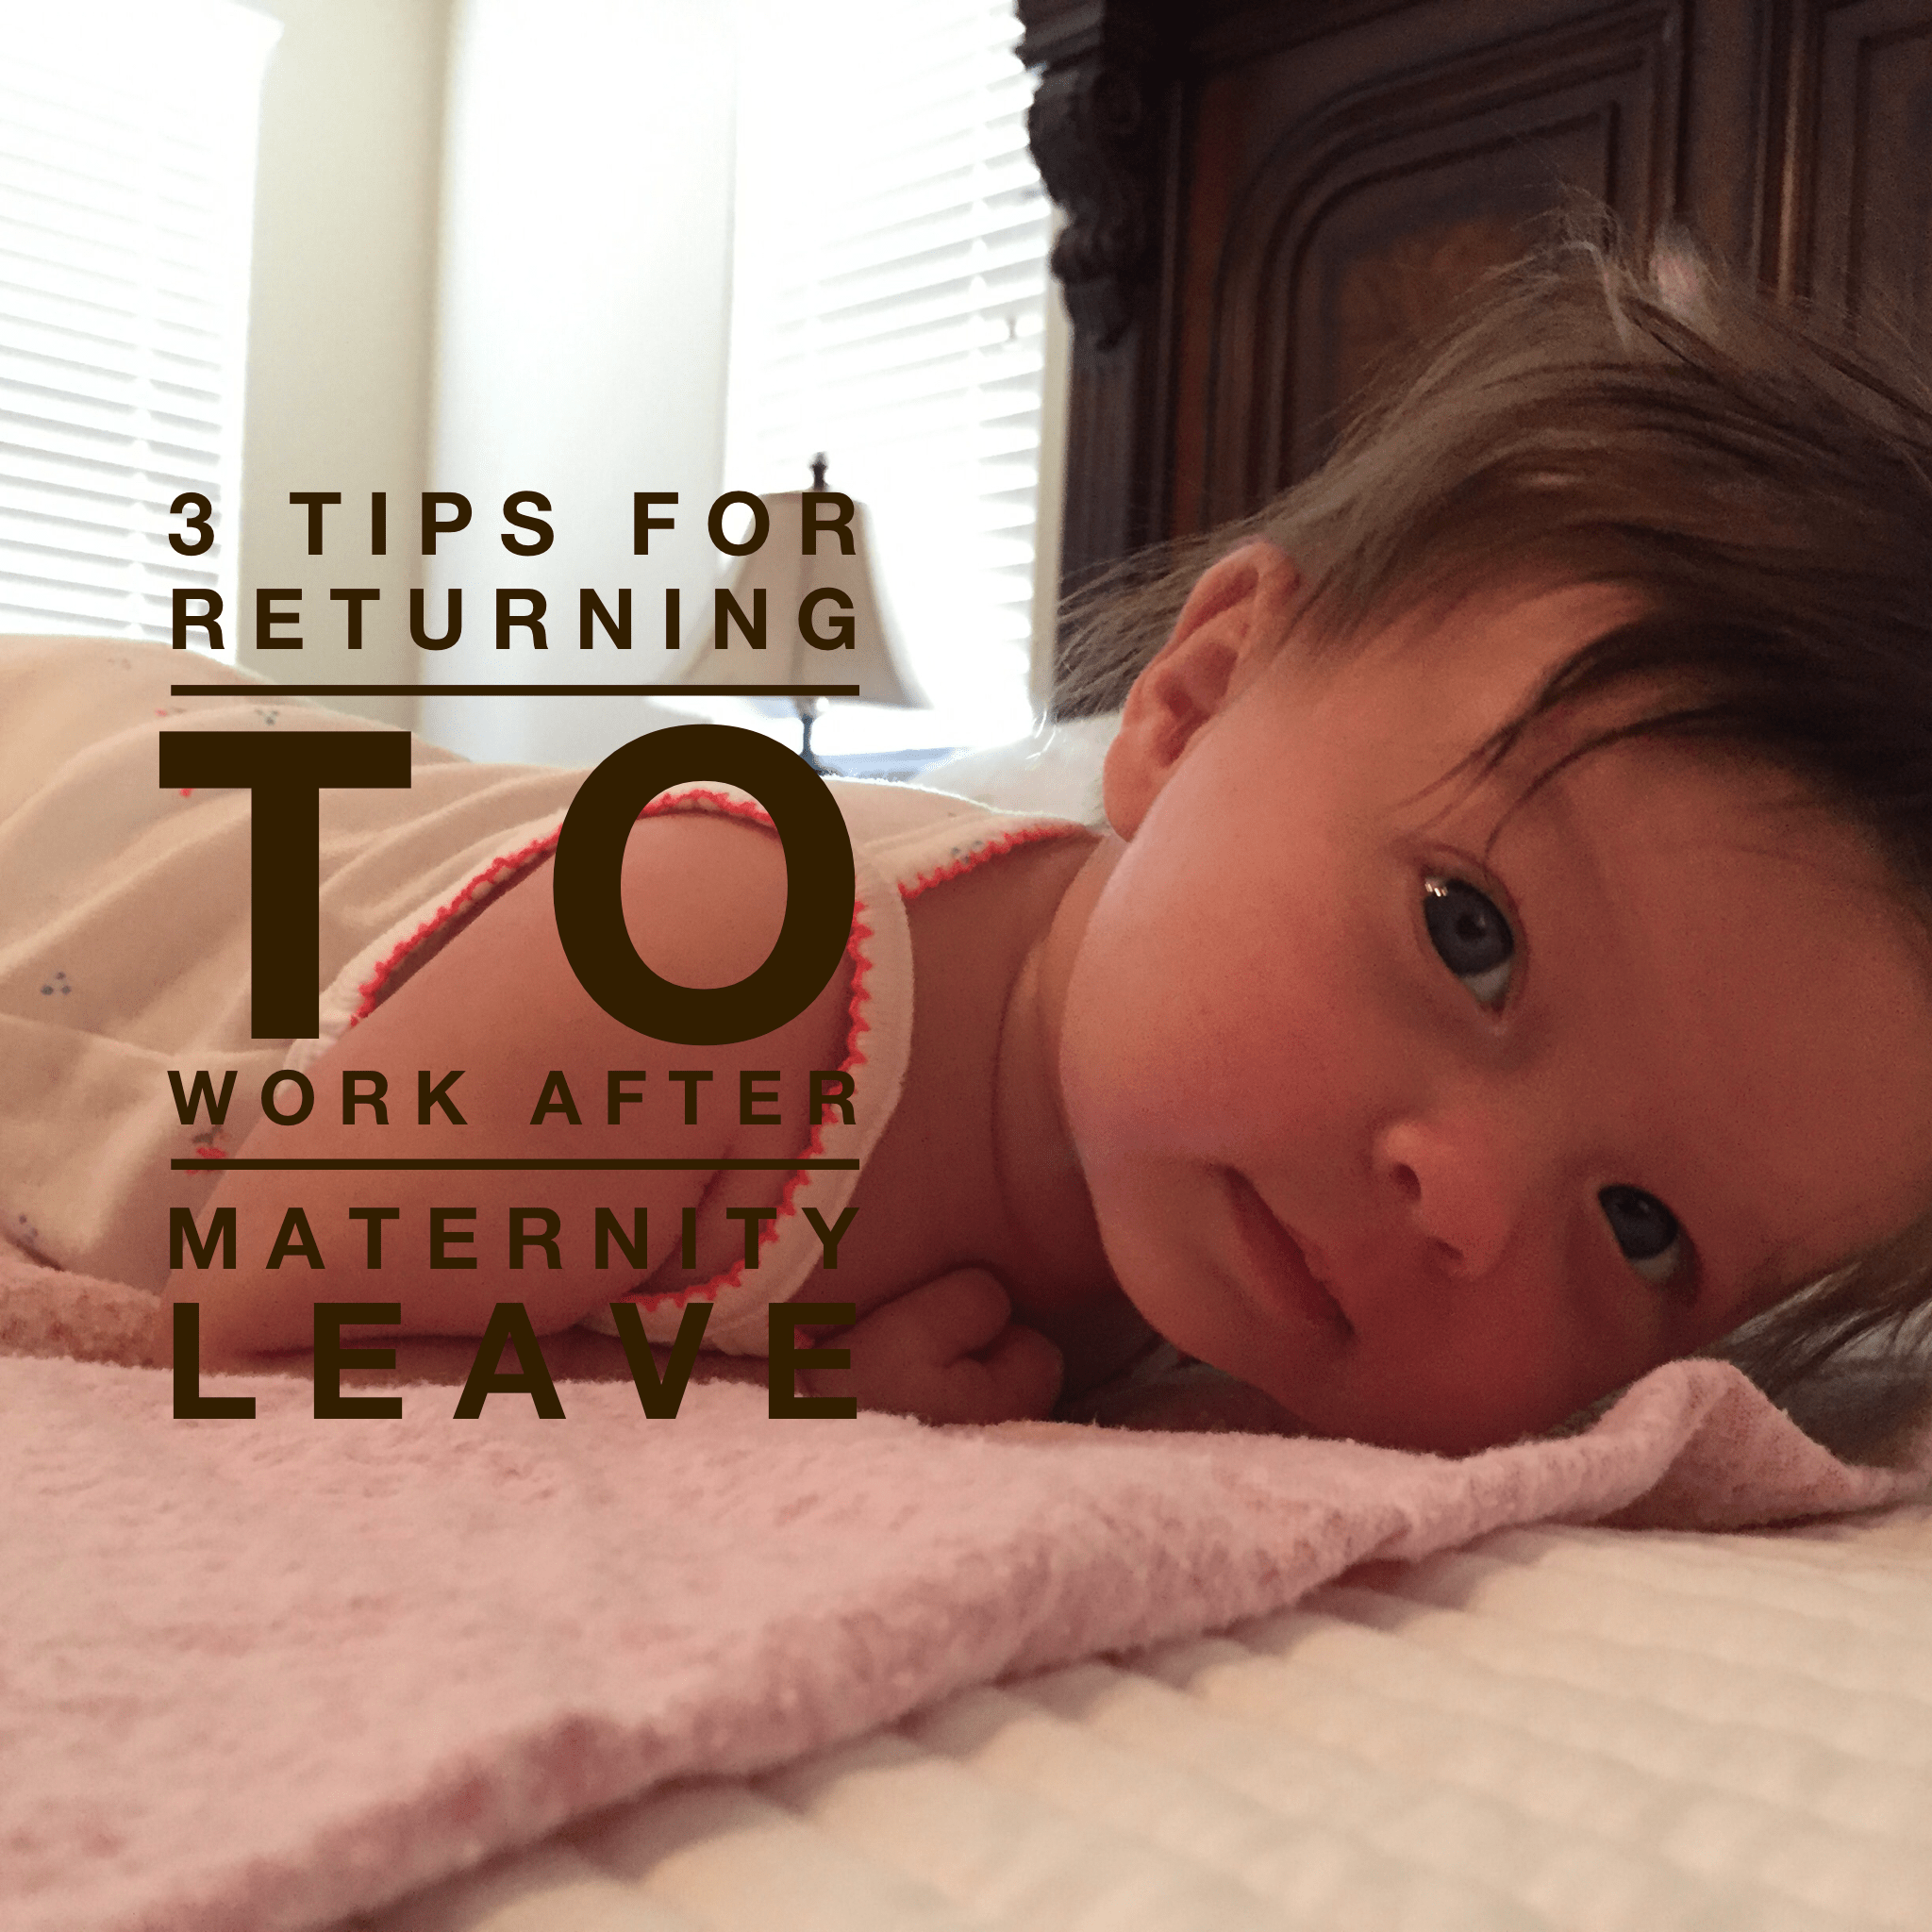 Three Tips for Returning to Work After Maternity Leave